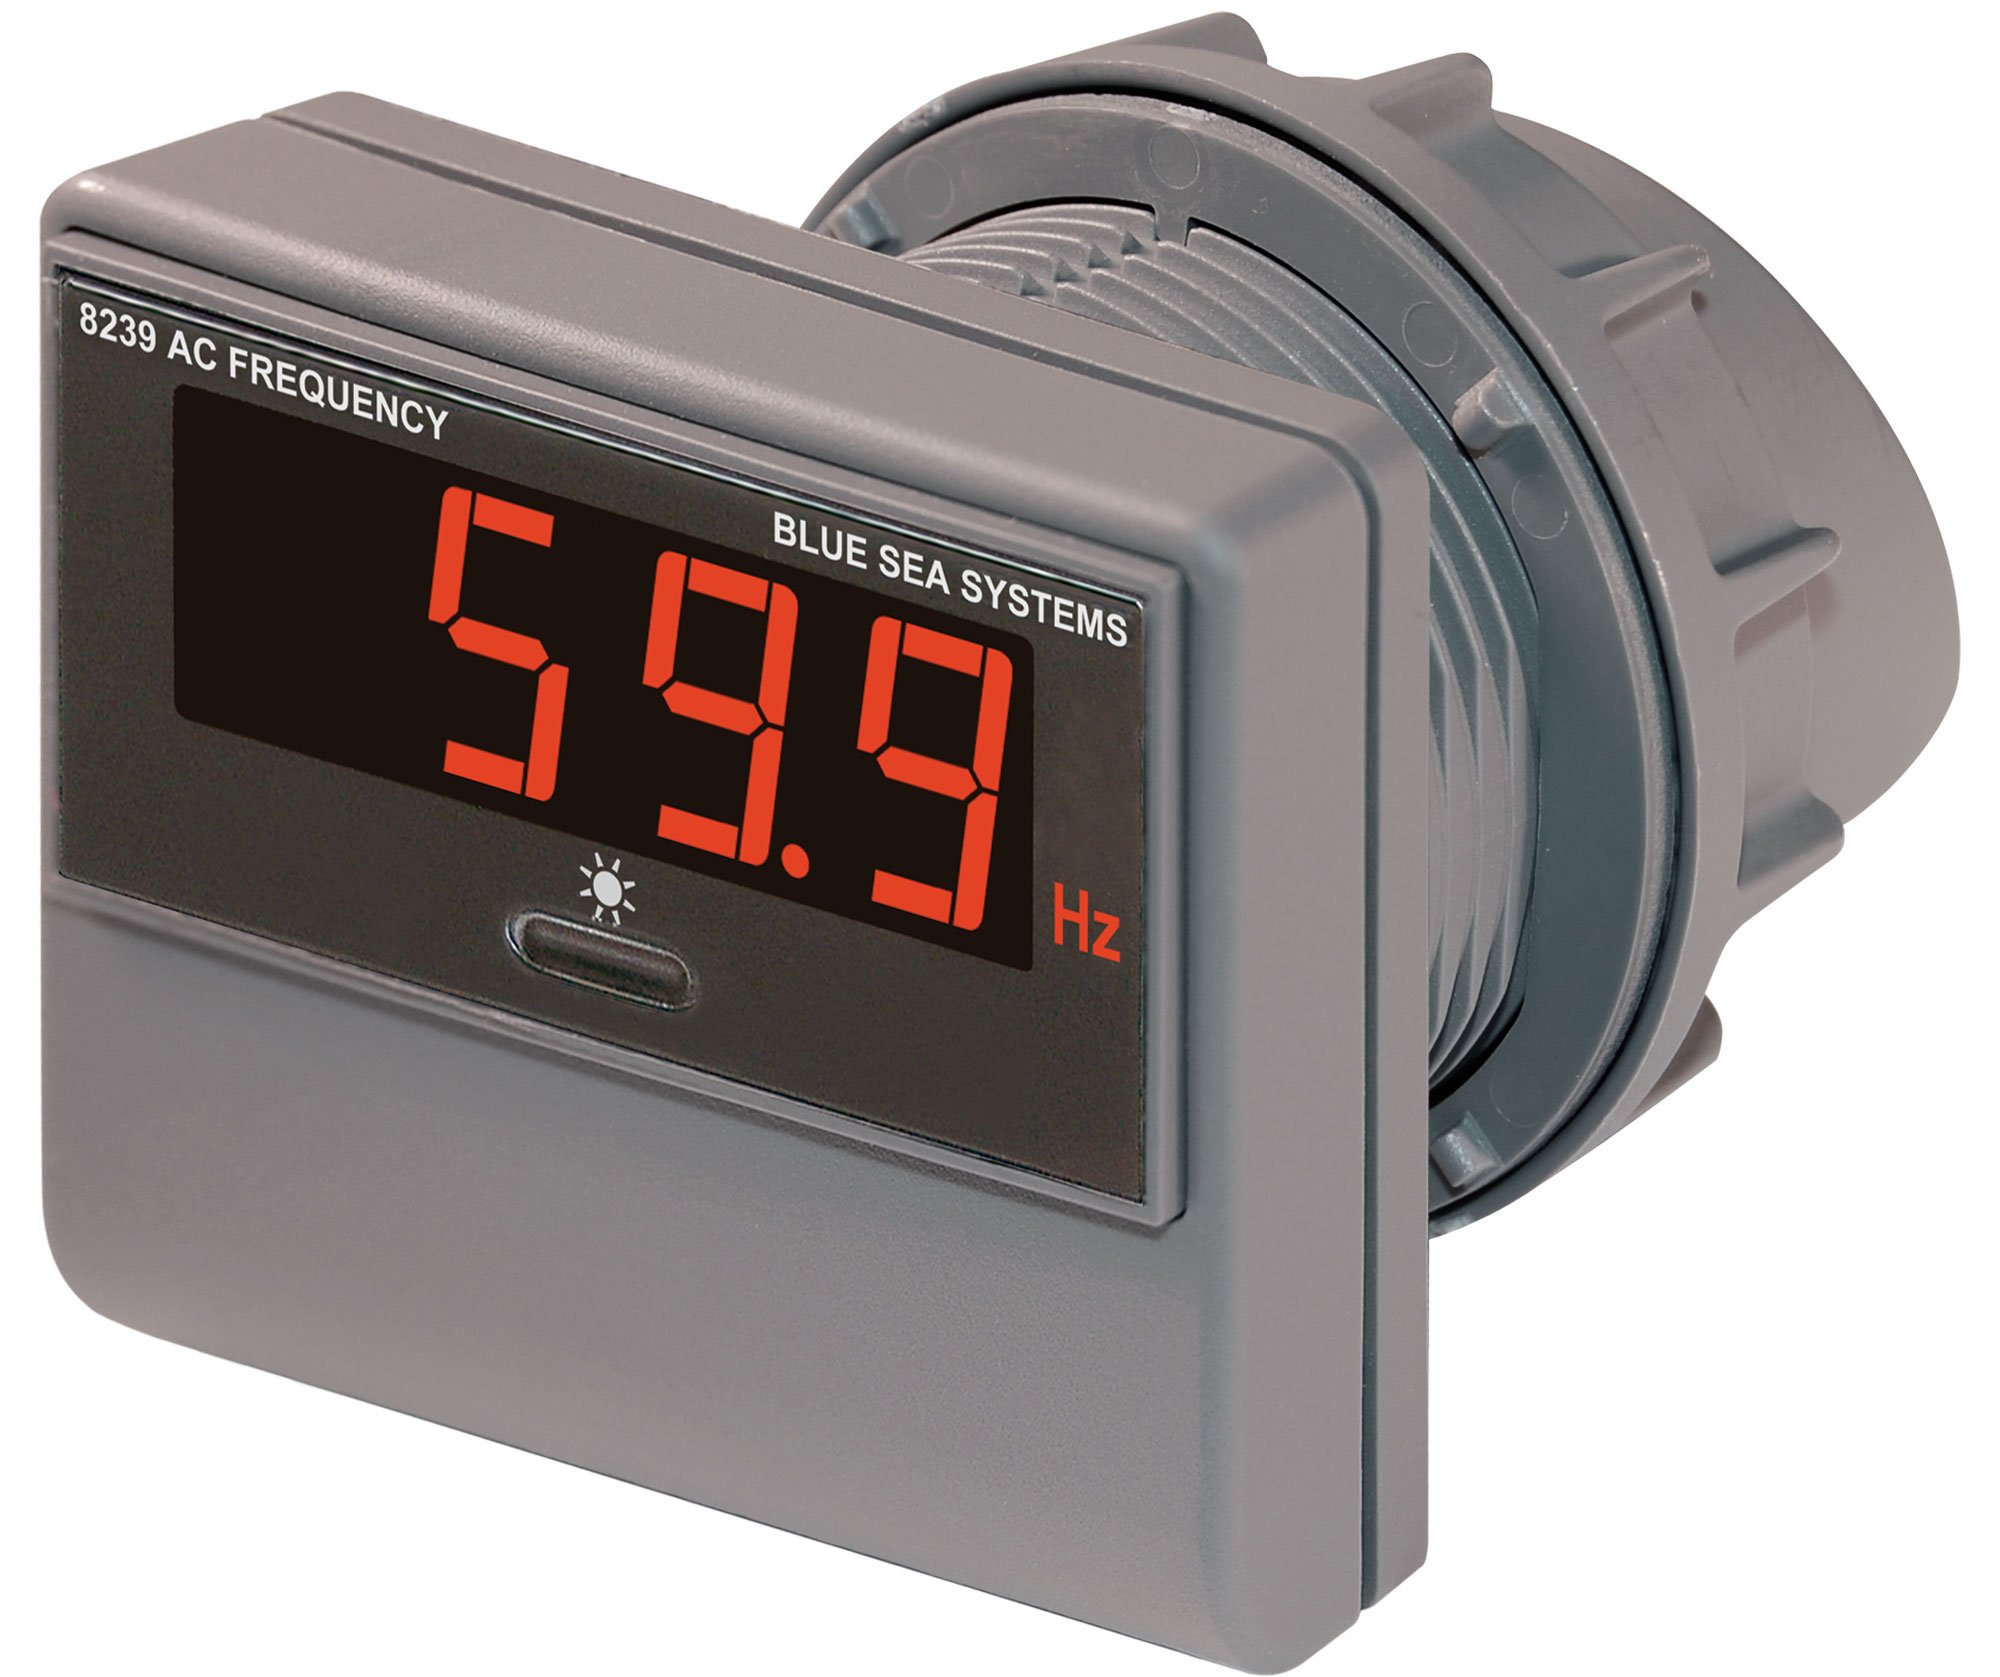 Blue Sea Systems AC Digital 40 to 90 Hertz Frequency Meter